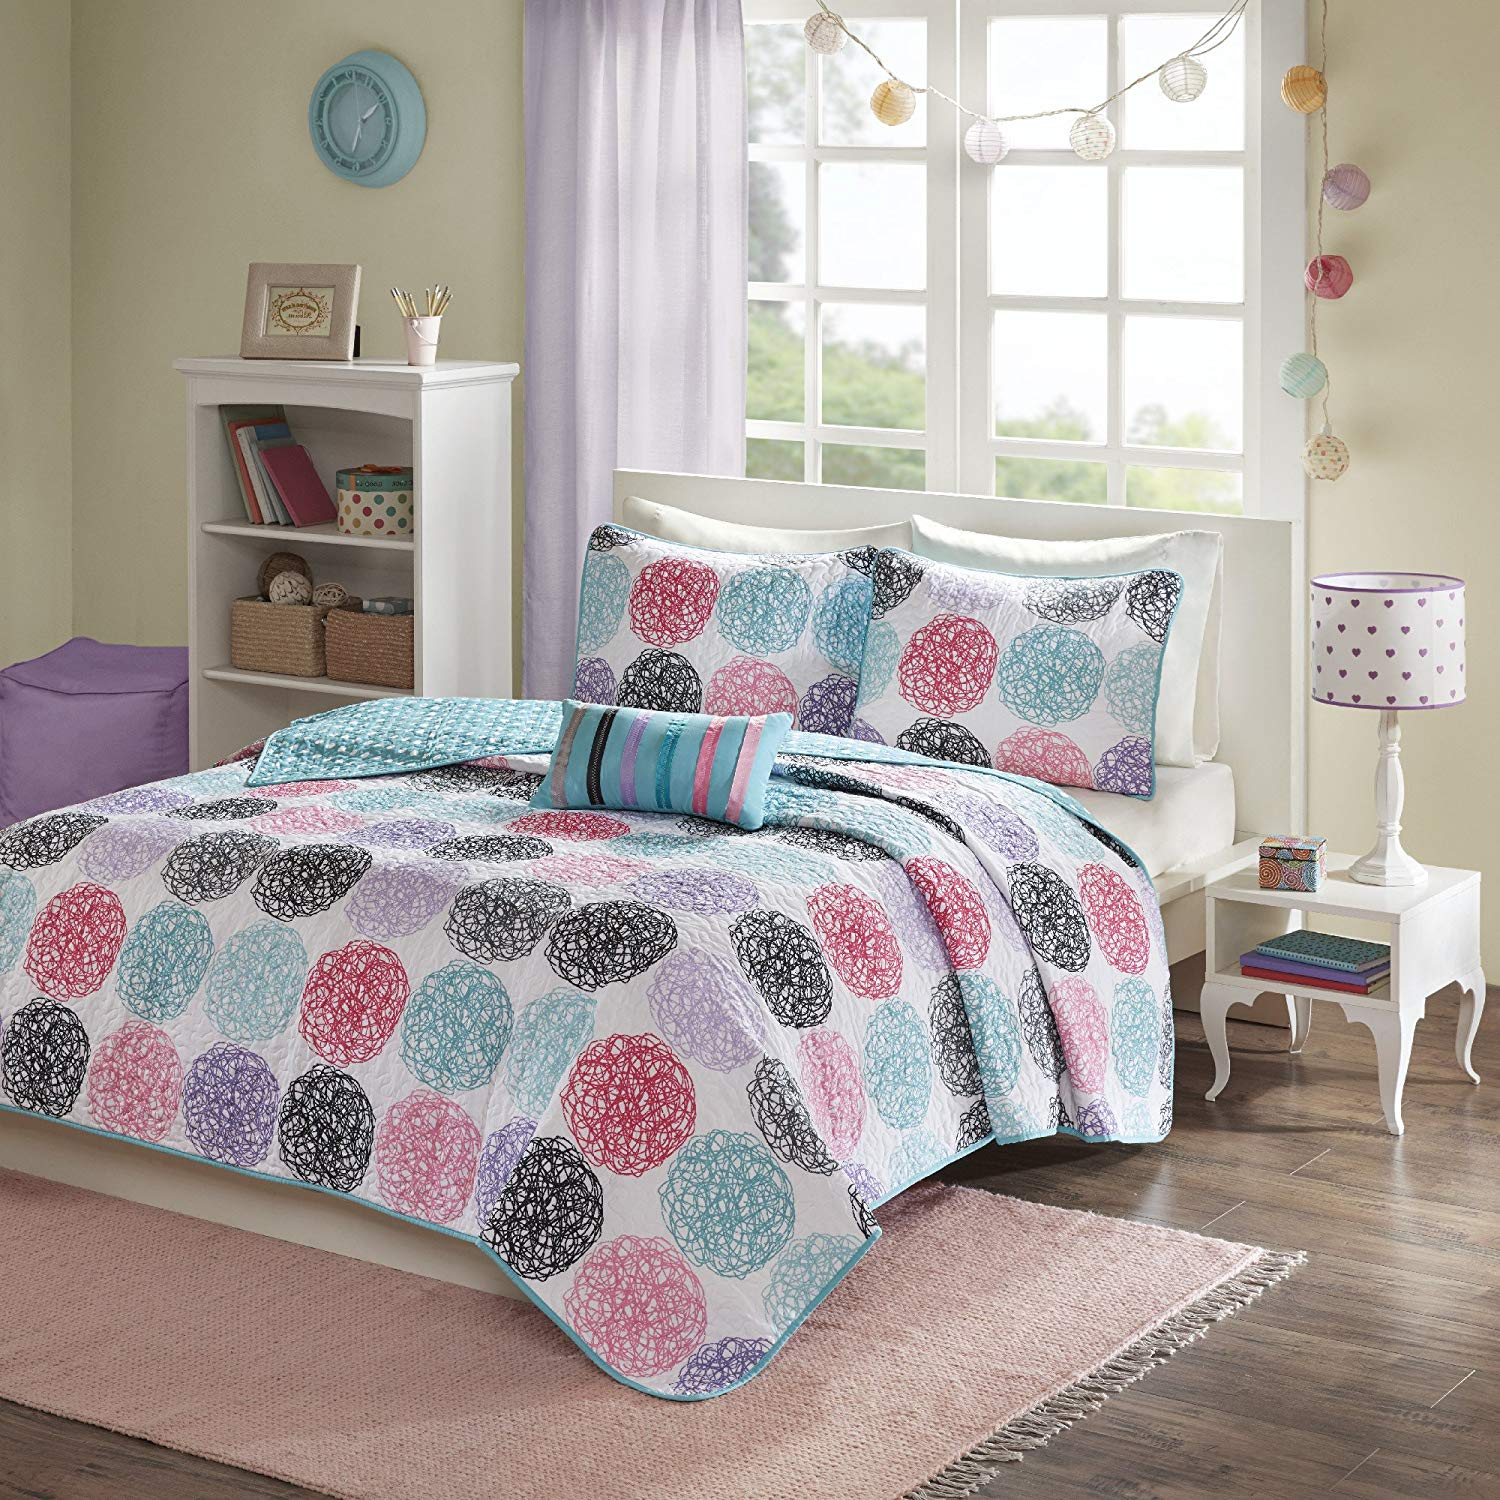 Ln 4 Piece Kids Purple Pink Quilted Coverlet Full Queen Set, Black Blue Geometric Winery Bedding Medallion Doodled Circles Polka Dot Reversible For Girls Bedroom Multi Soft Cozy, Polyester